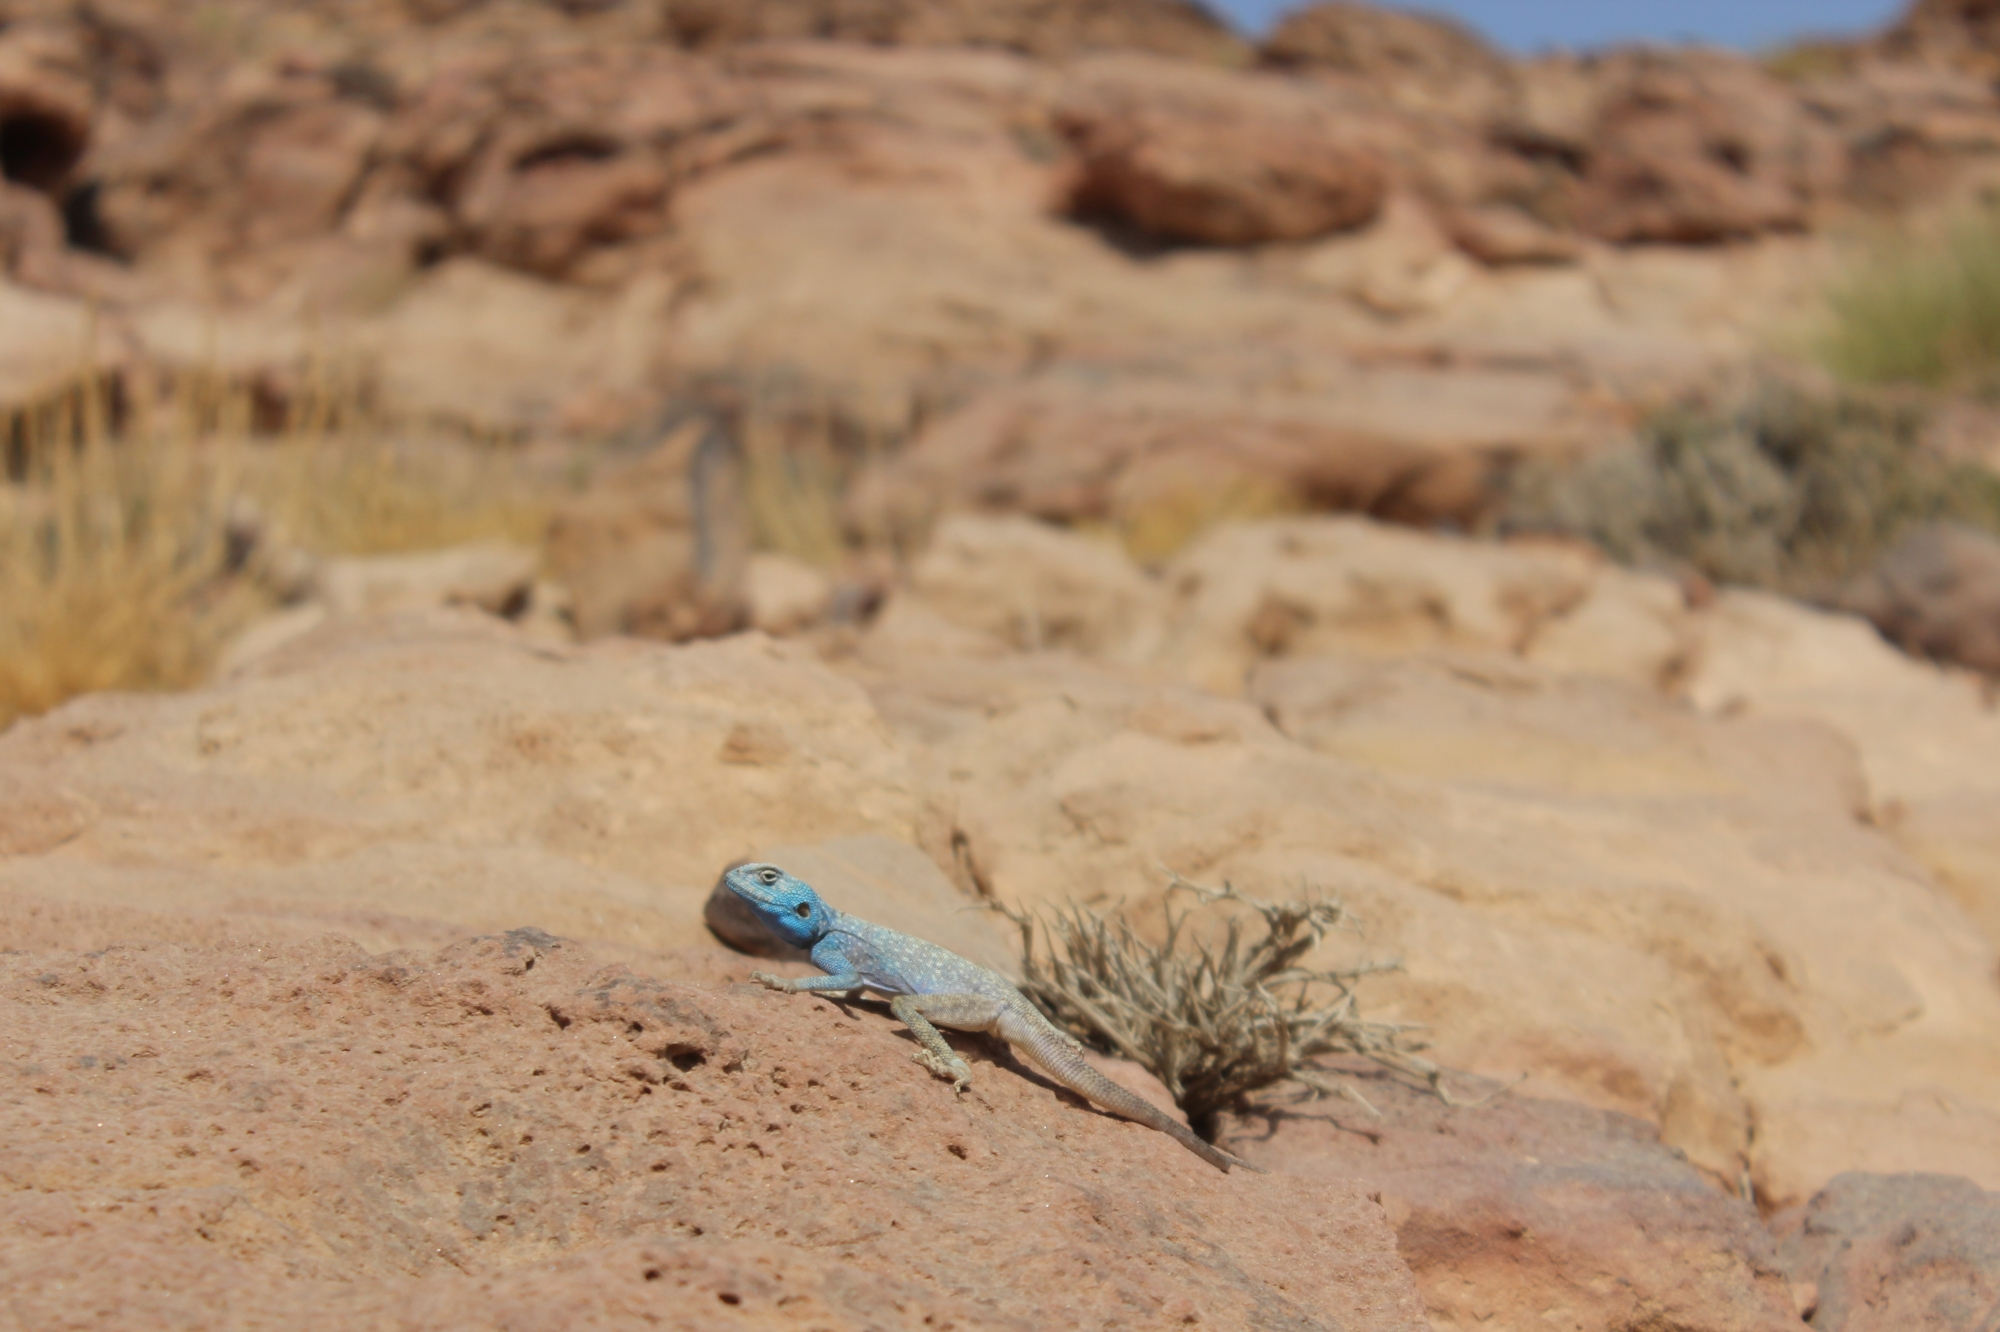 This male Sinai agama lizard is bright blue to attract females during the breeding season